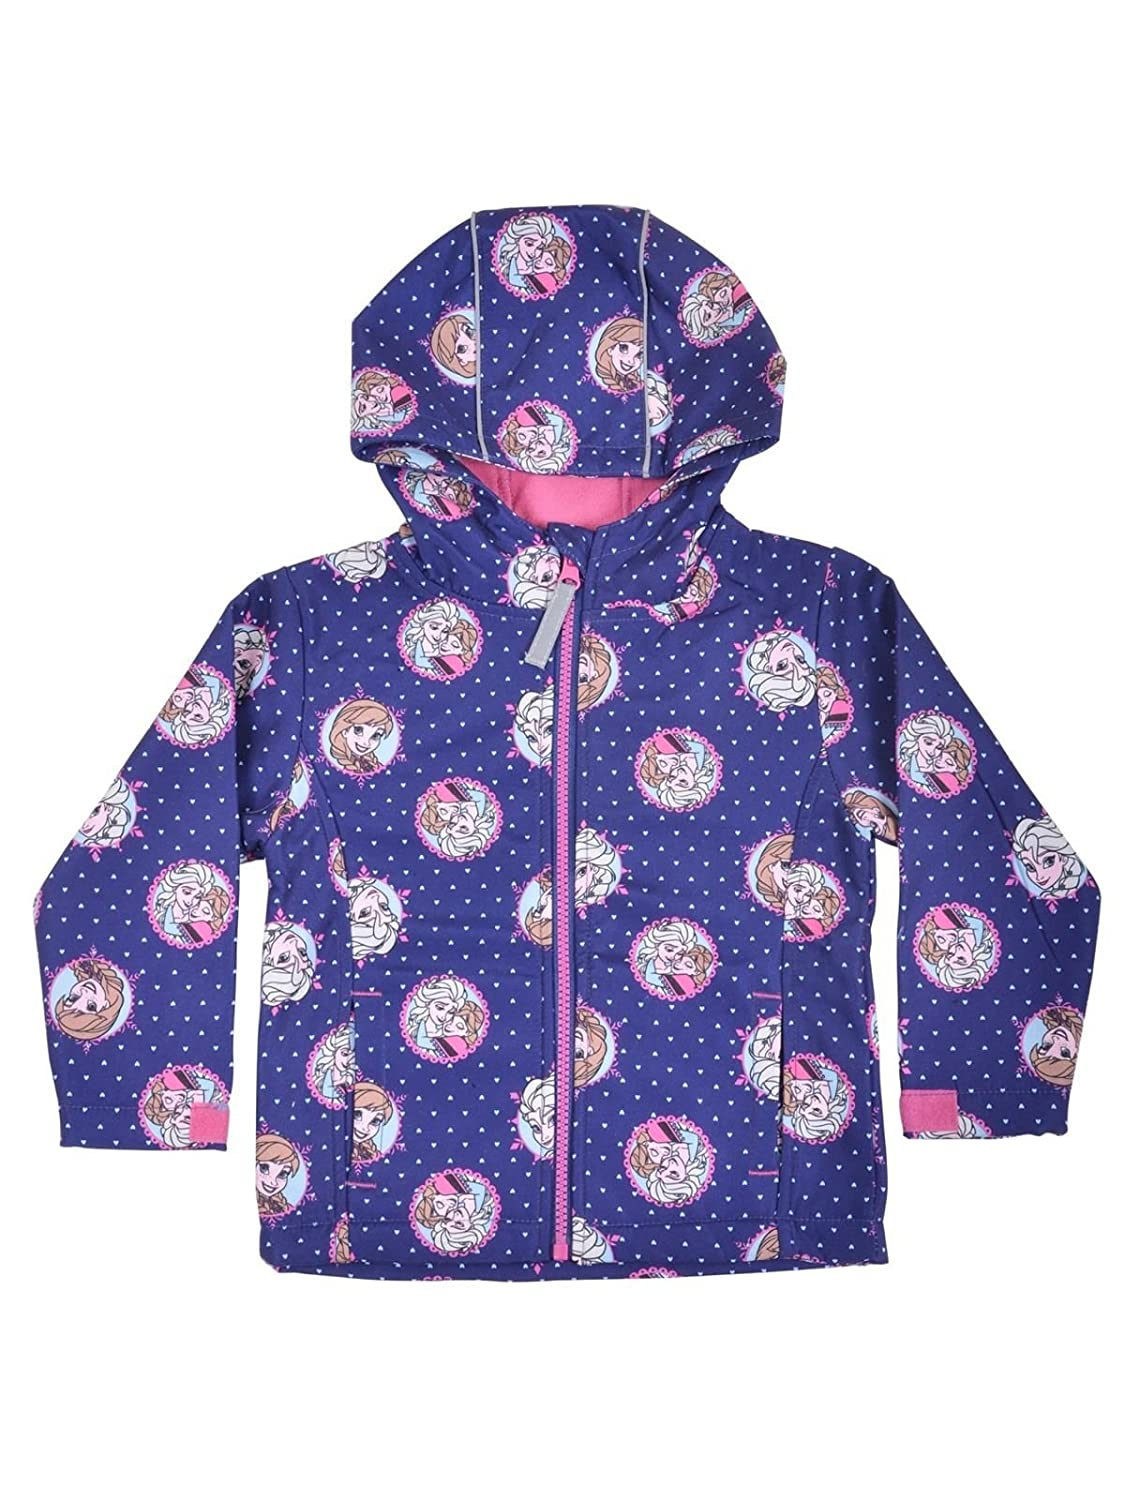 Disney Frozen Anna & Elsa 'Soft Shell' Zipped Jacket 100% Polyester 2-9 Years Clothing